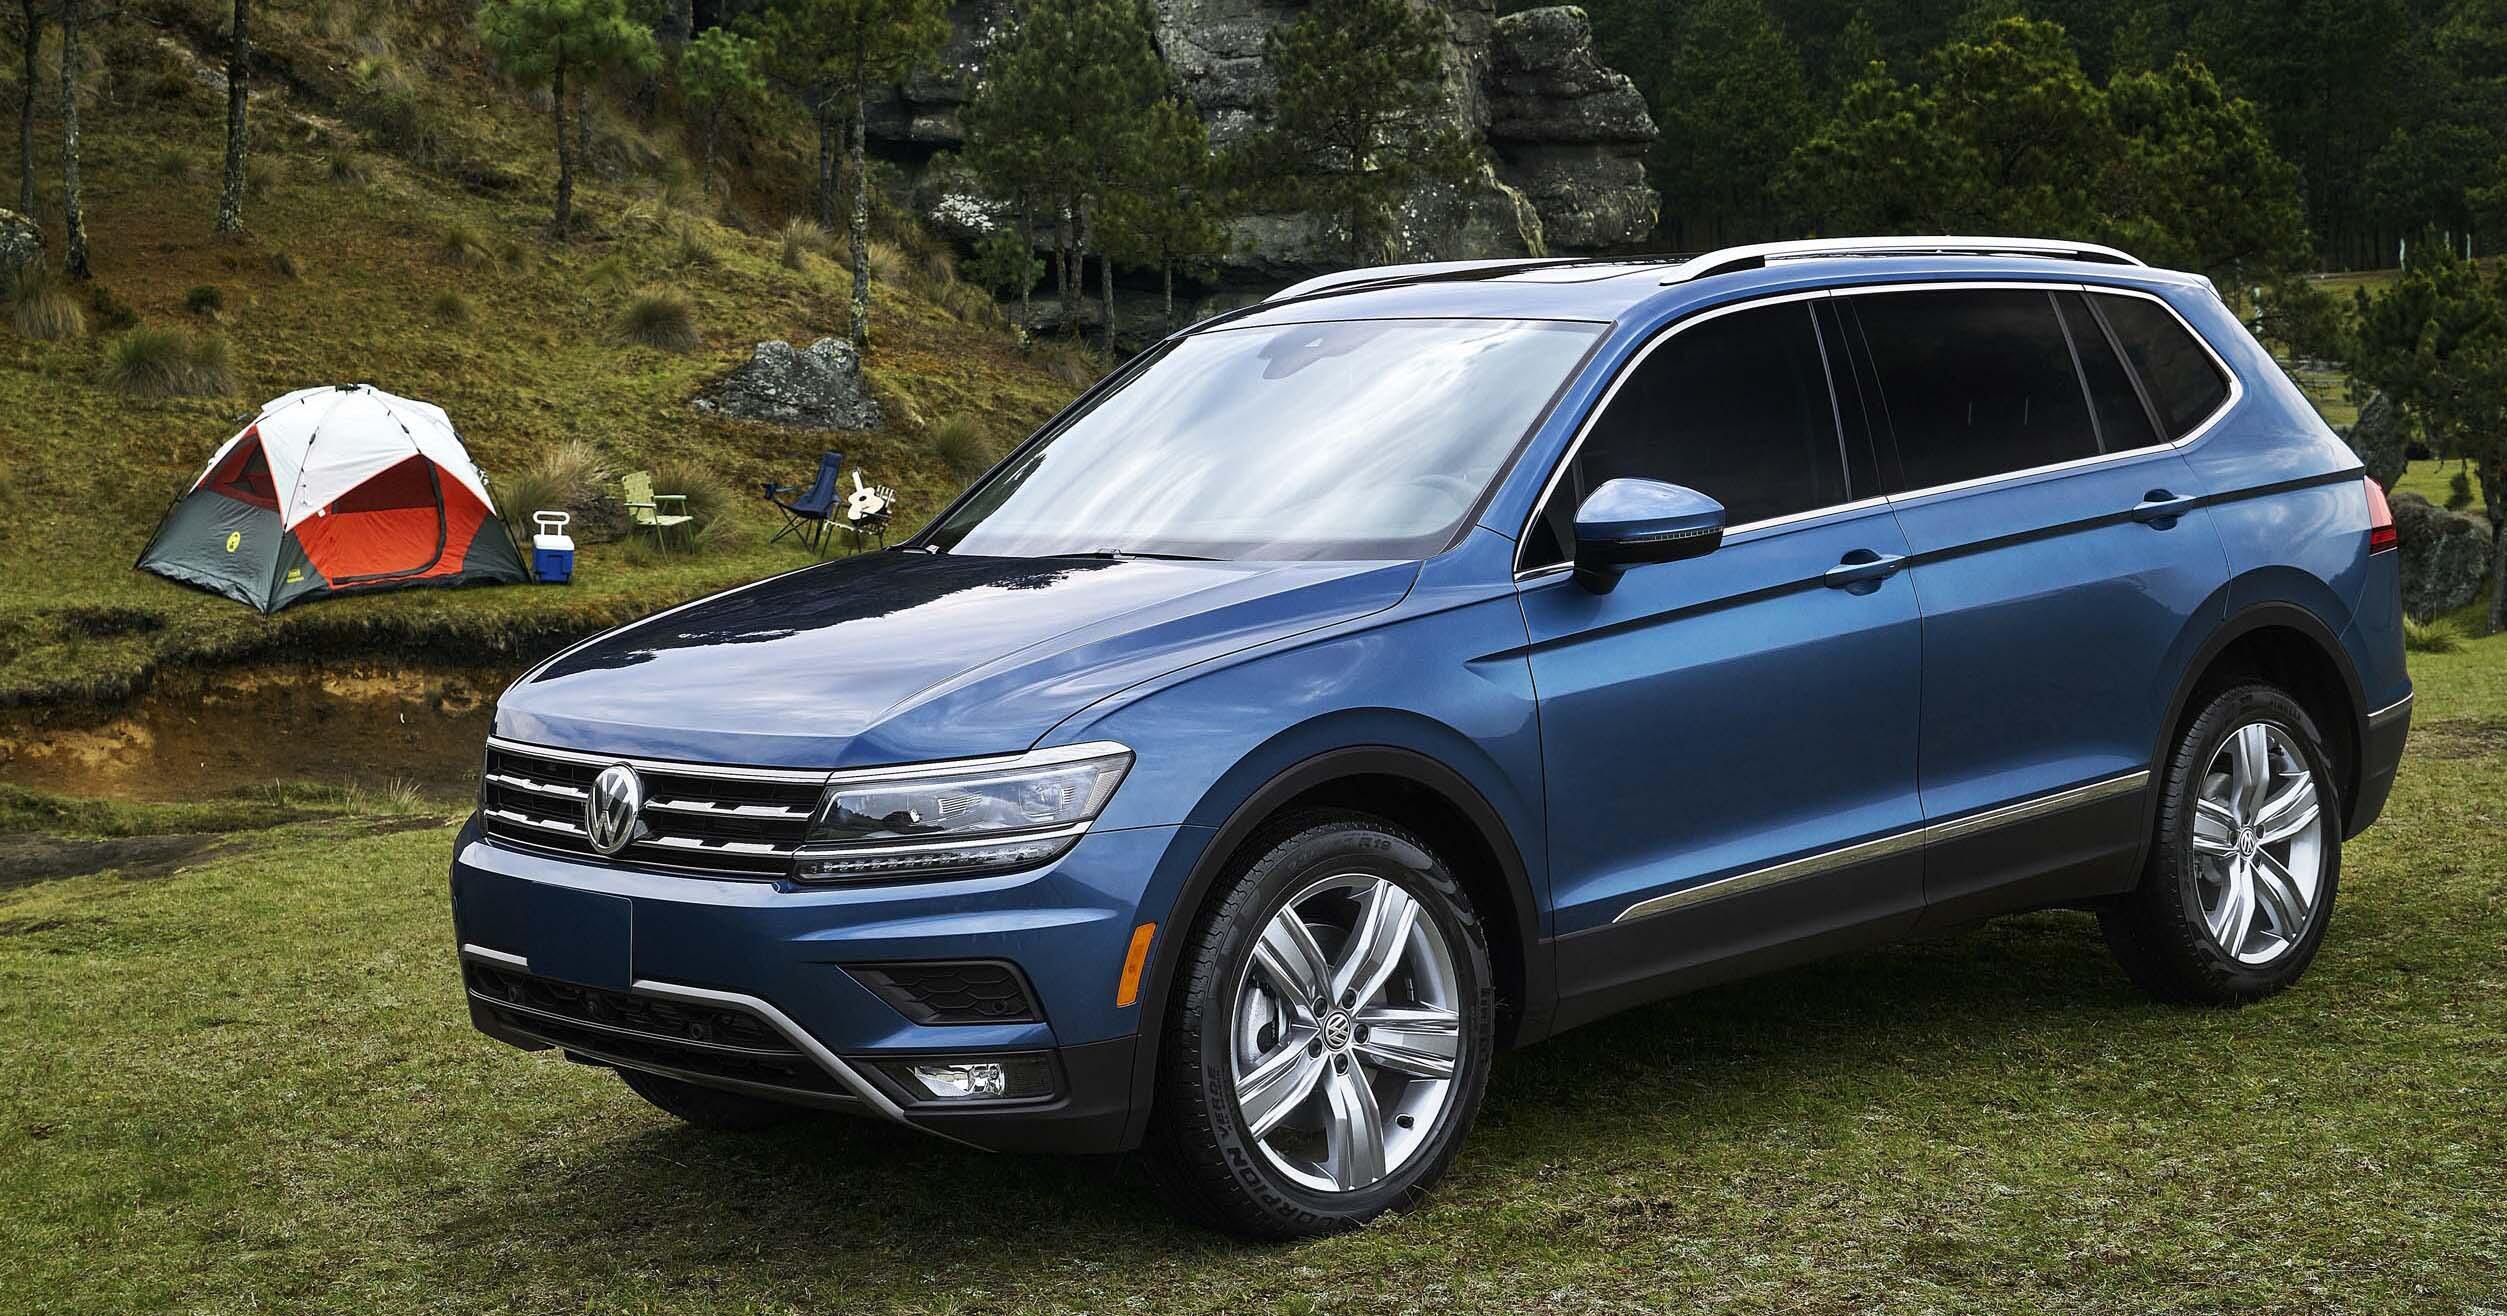 2021 Volkswagen Tiguan Reliability, Lease Price, Seating ...